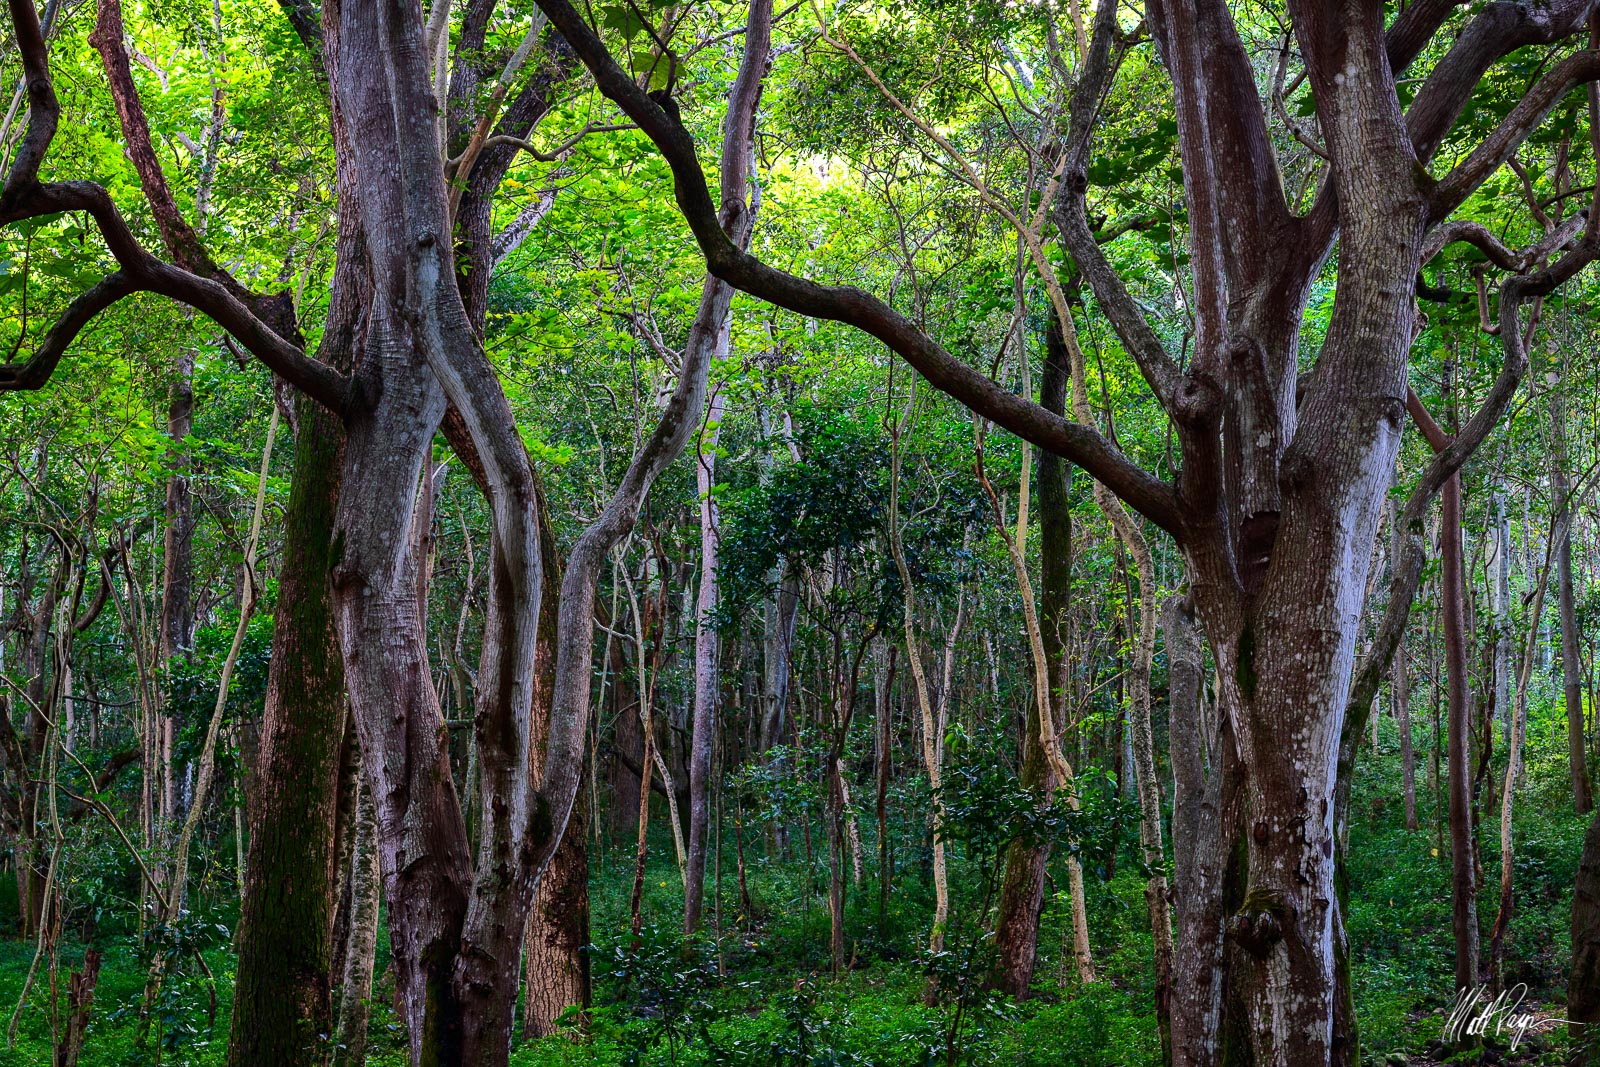 Forest, Hawaii, Jungle, Kauai, Moss, Waimea Canyon, Wilderness, canopy, textures, trees, photo